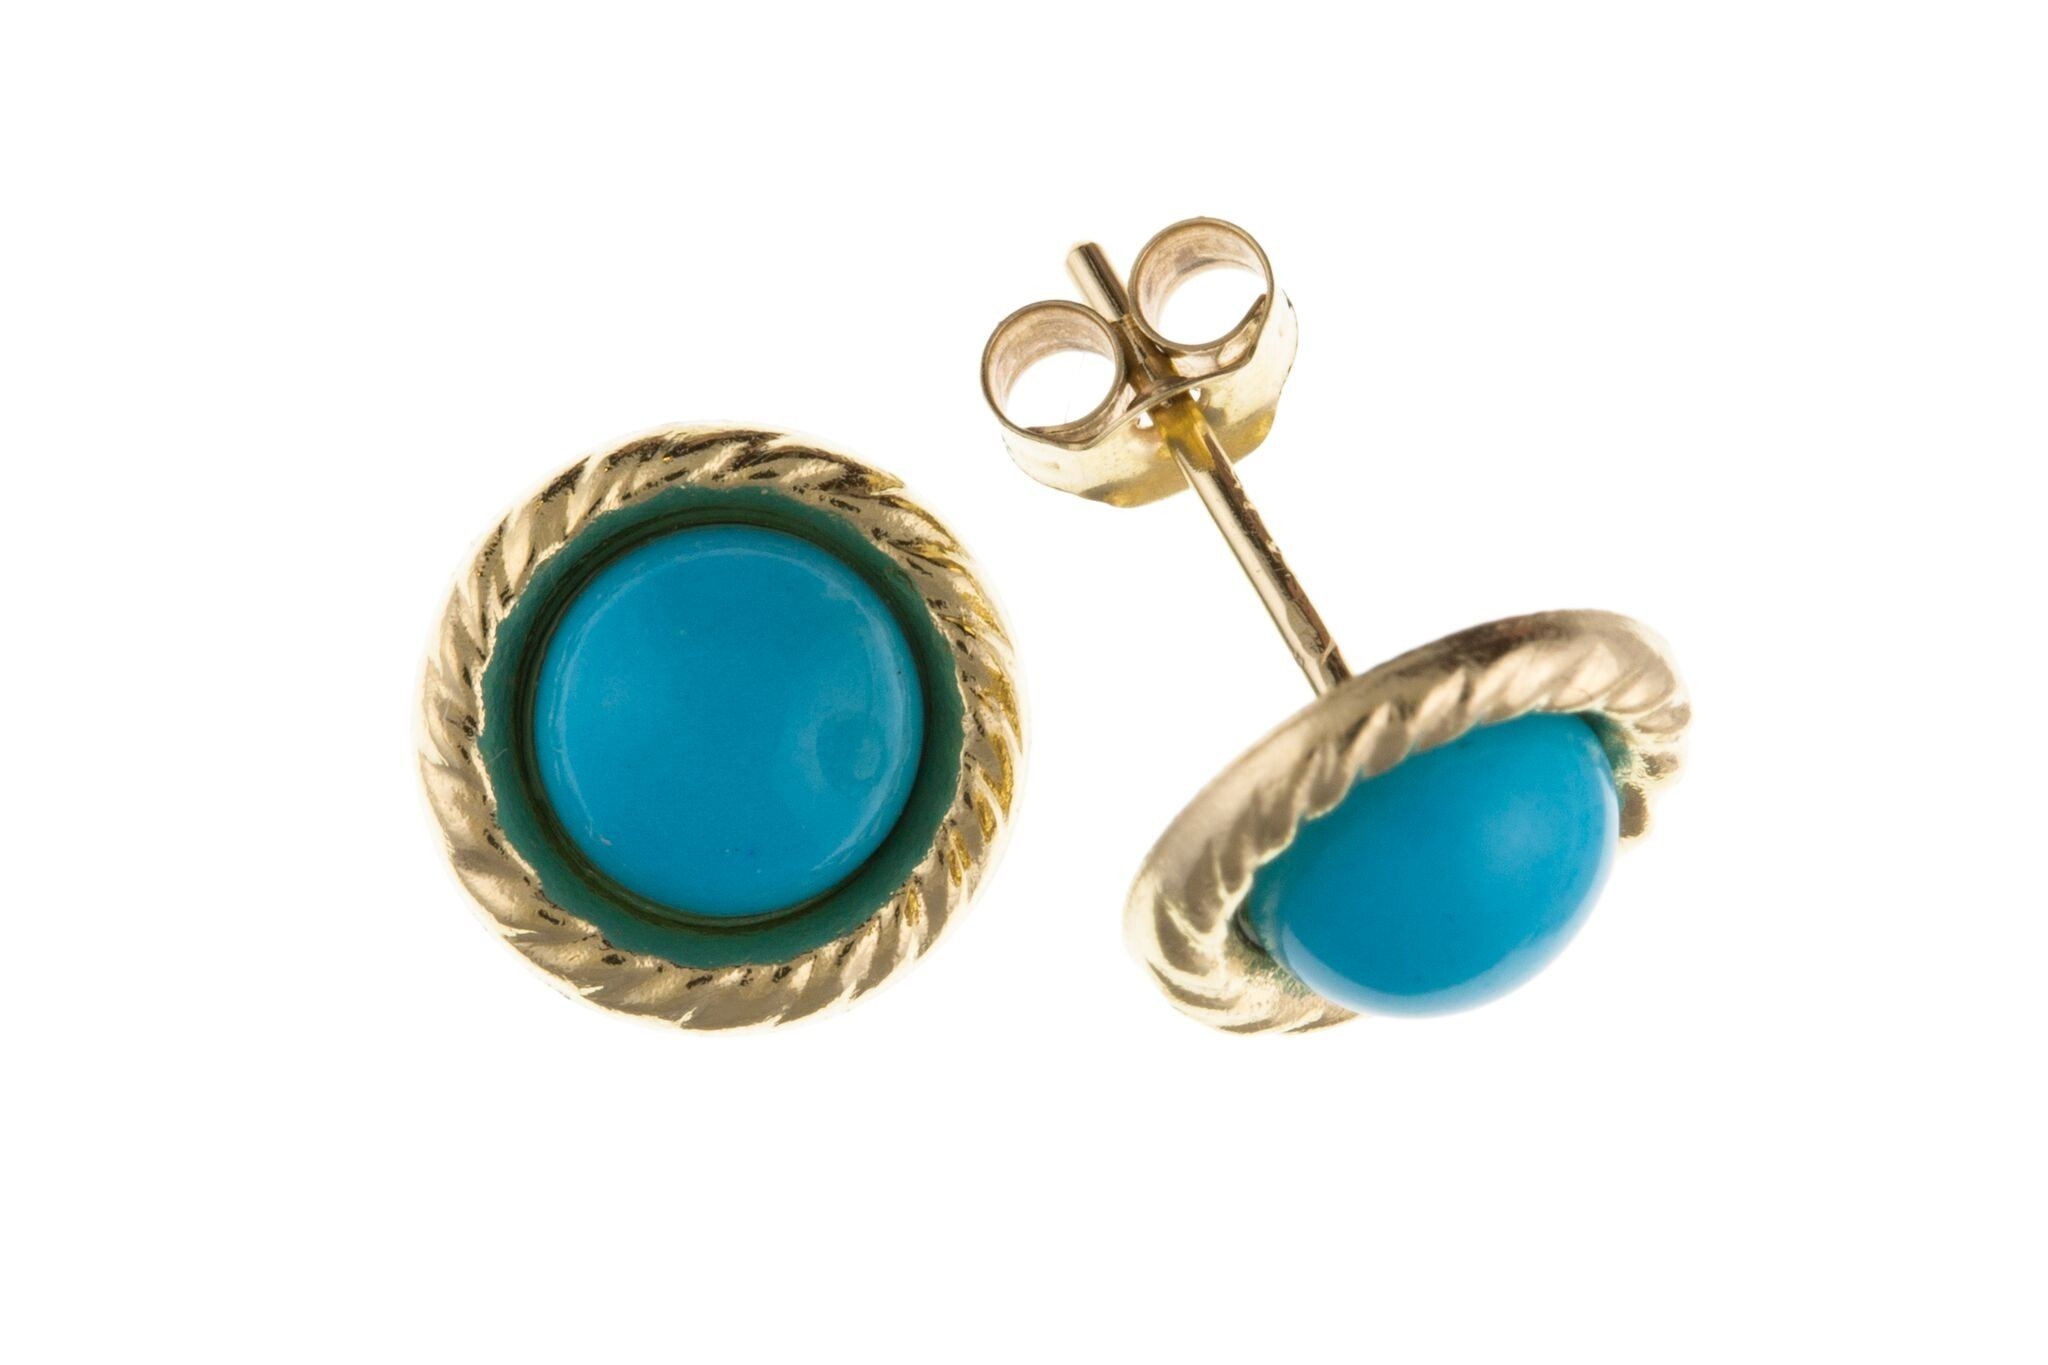 stud real color gold jaipur turquoise yellow products jaipurturquoisestudearrings earrings petite